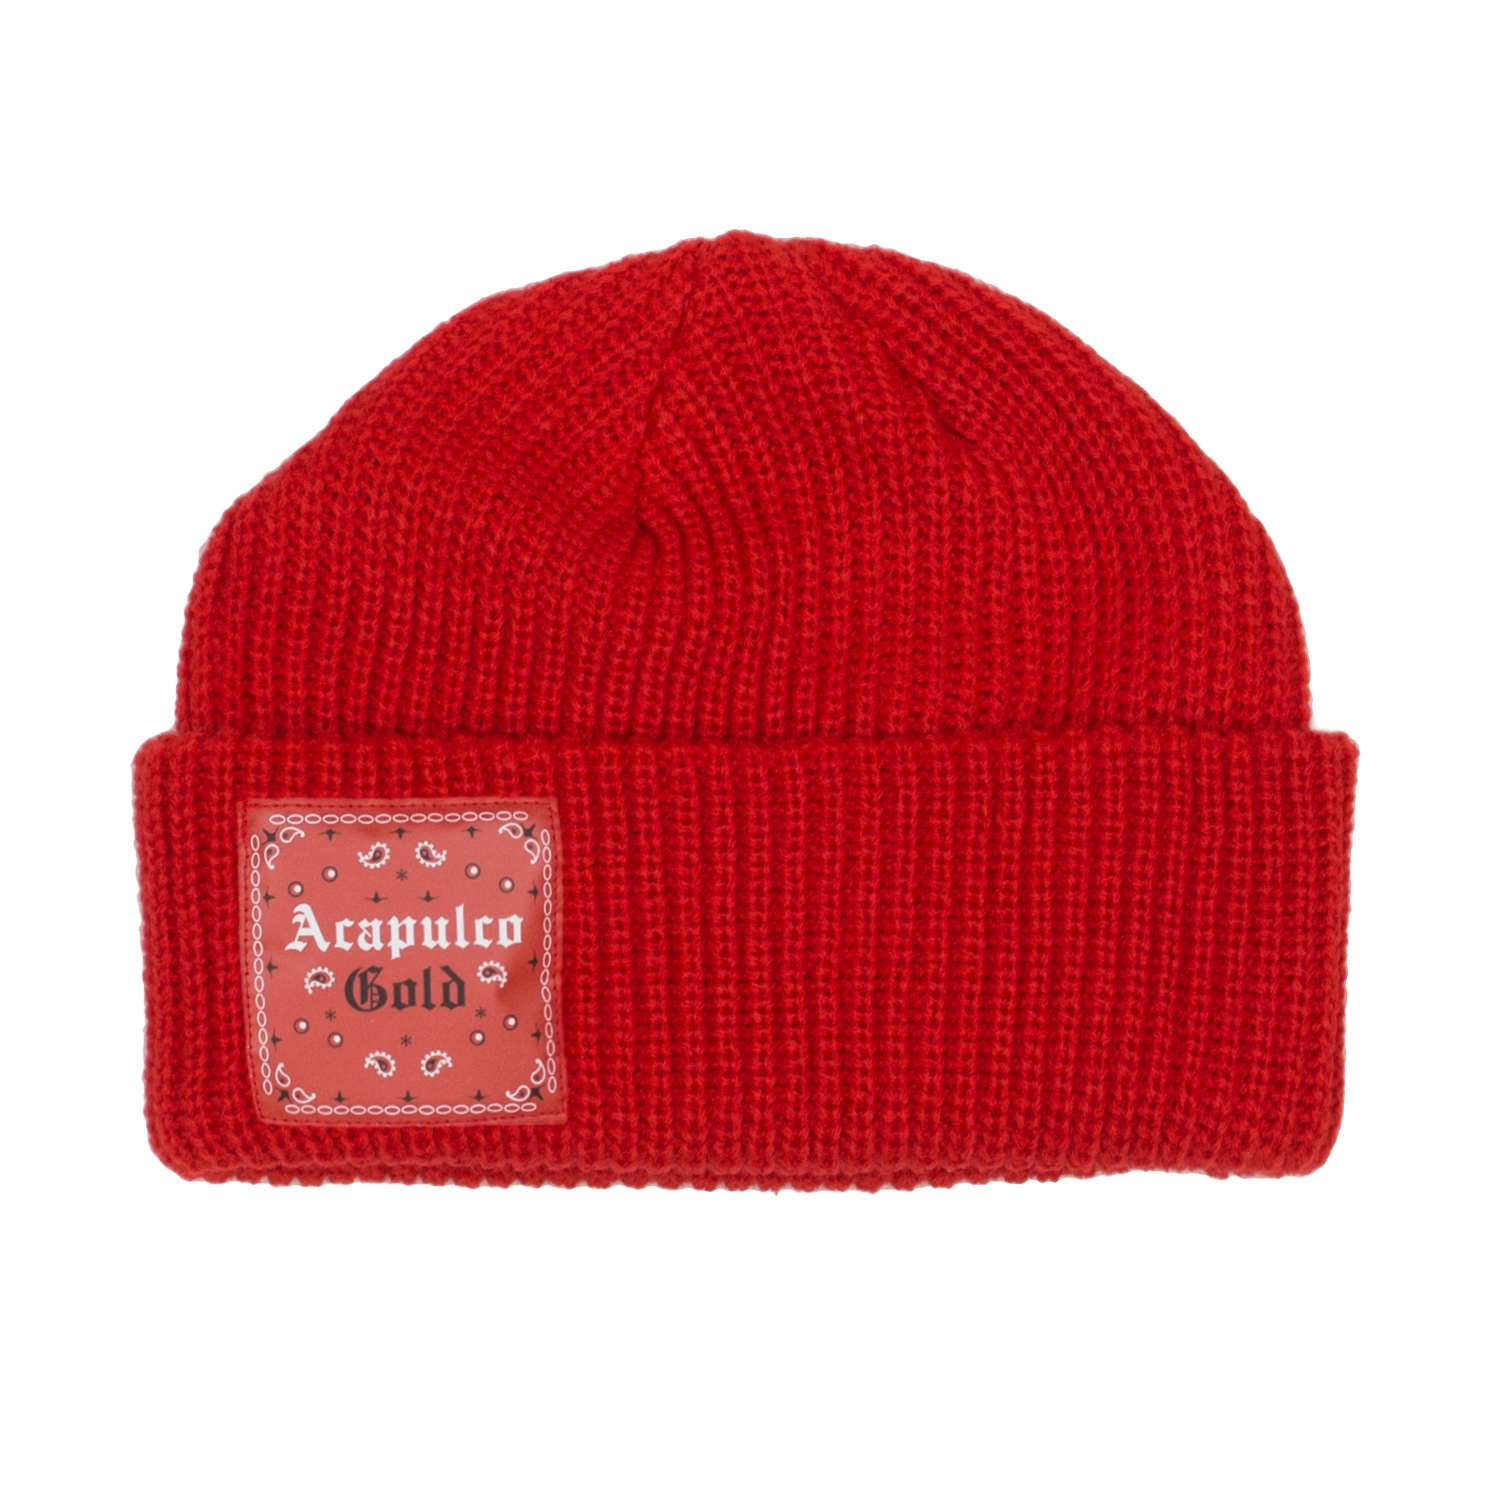 【ACAPULCO GOLD/アカプルコ ゴールド】USAG CABLE BEANIE ニット帽 / RED/RED